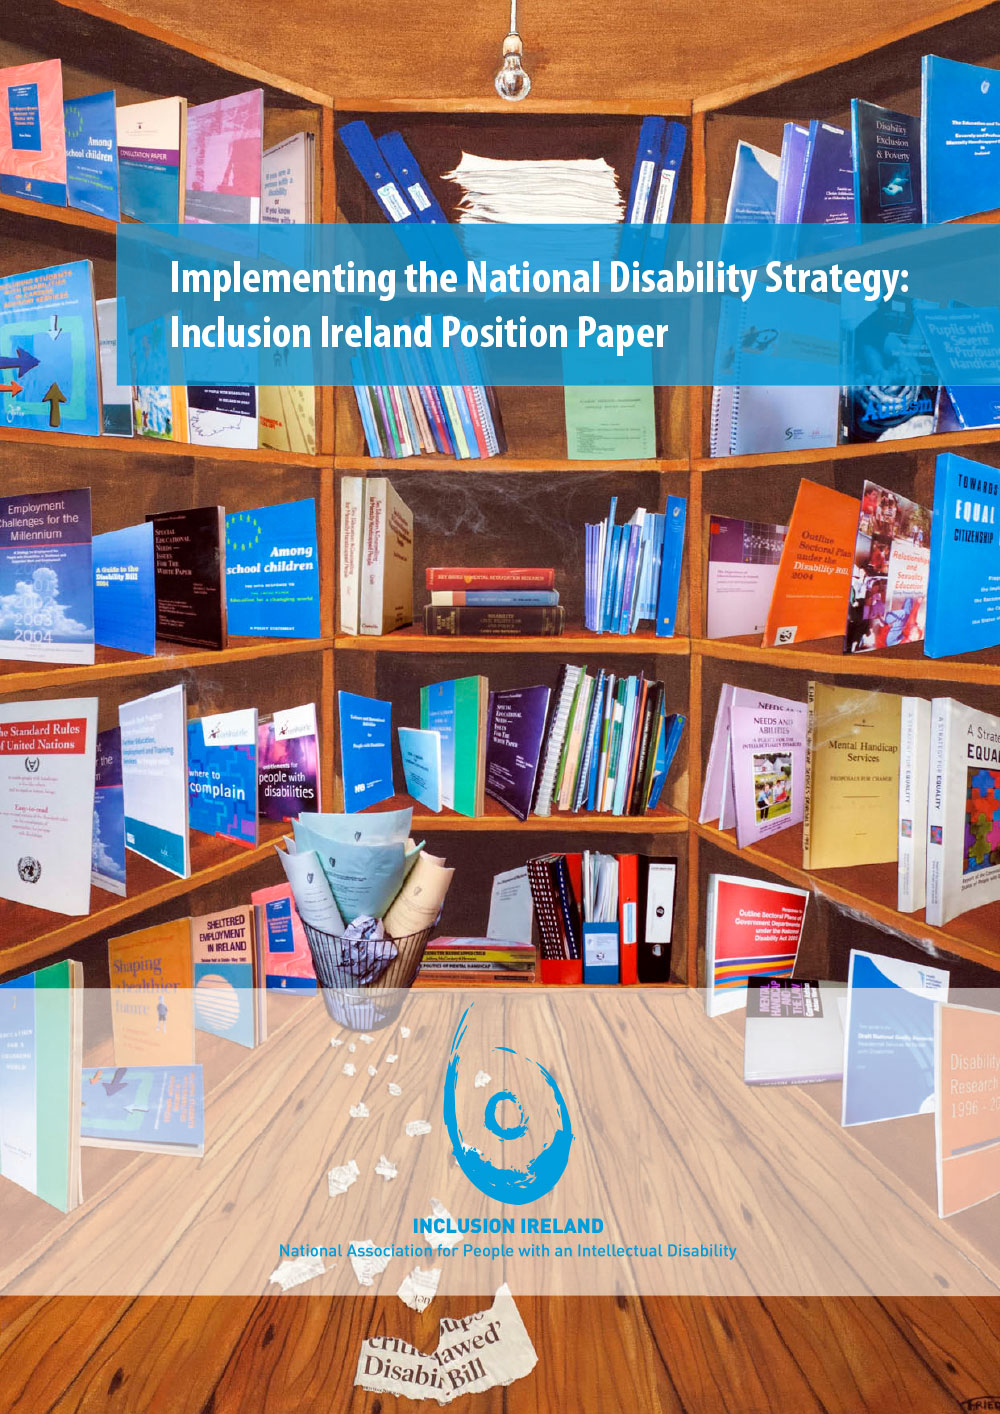 Implementing the National Disability Strategy: Inclusion Ireland Position Paper (January 2013)